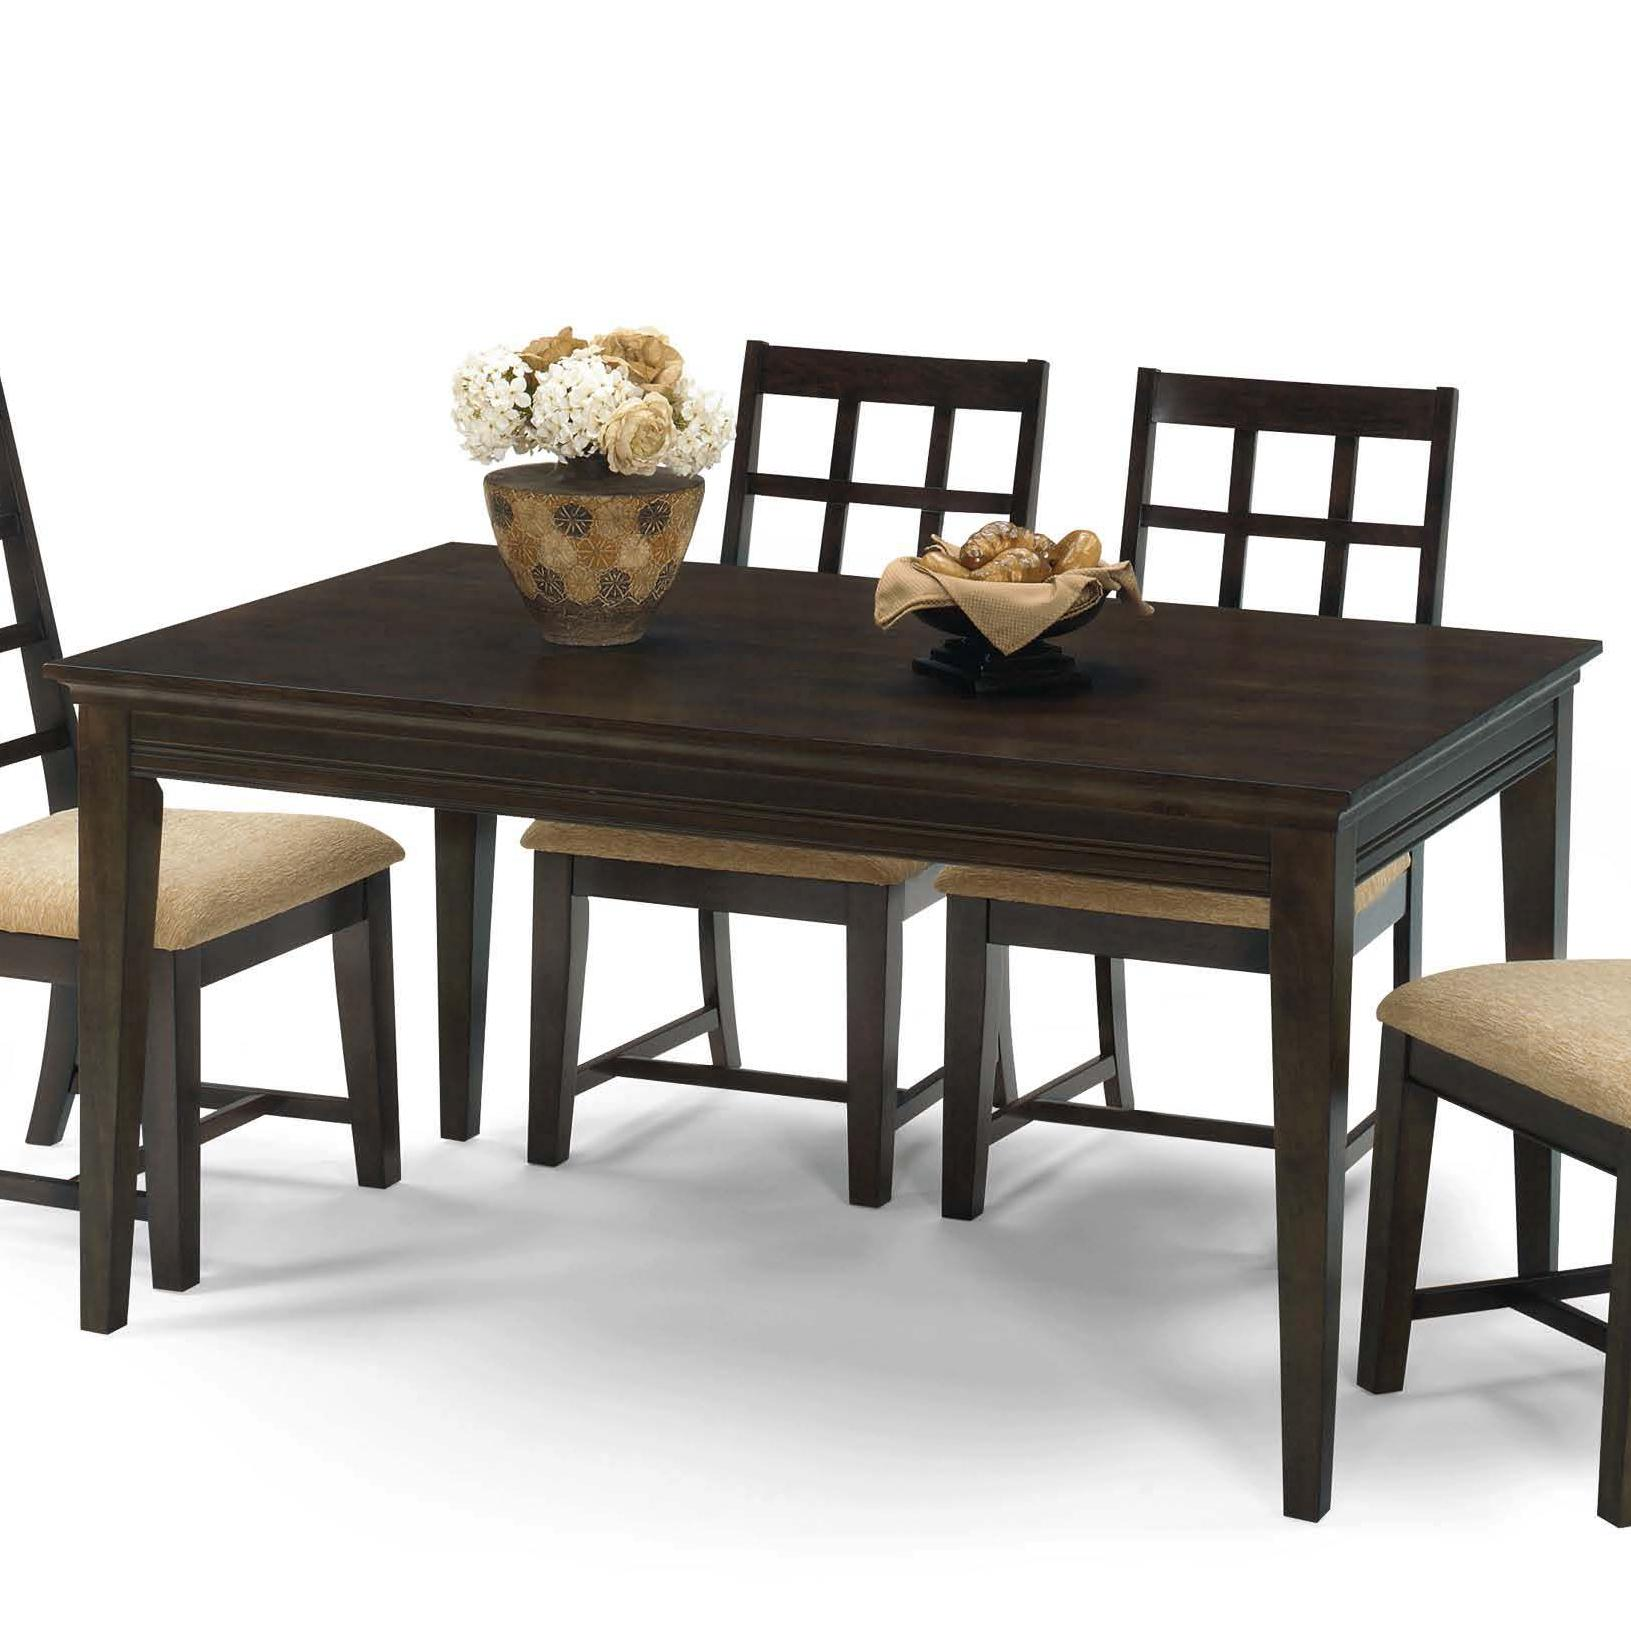 Progressive furniture casual traditions p107d 10 casual 4 for Informal dining table